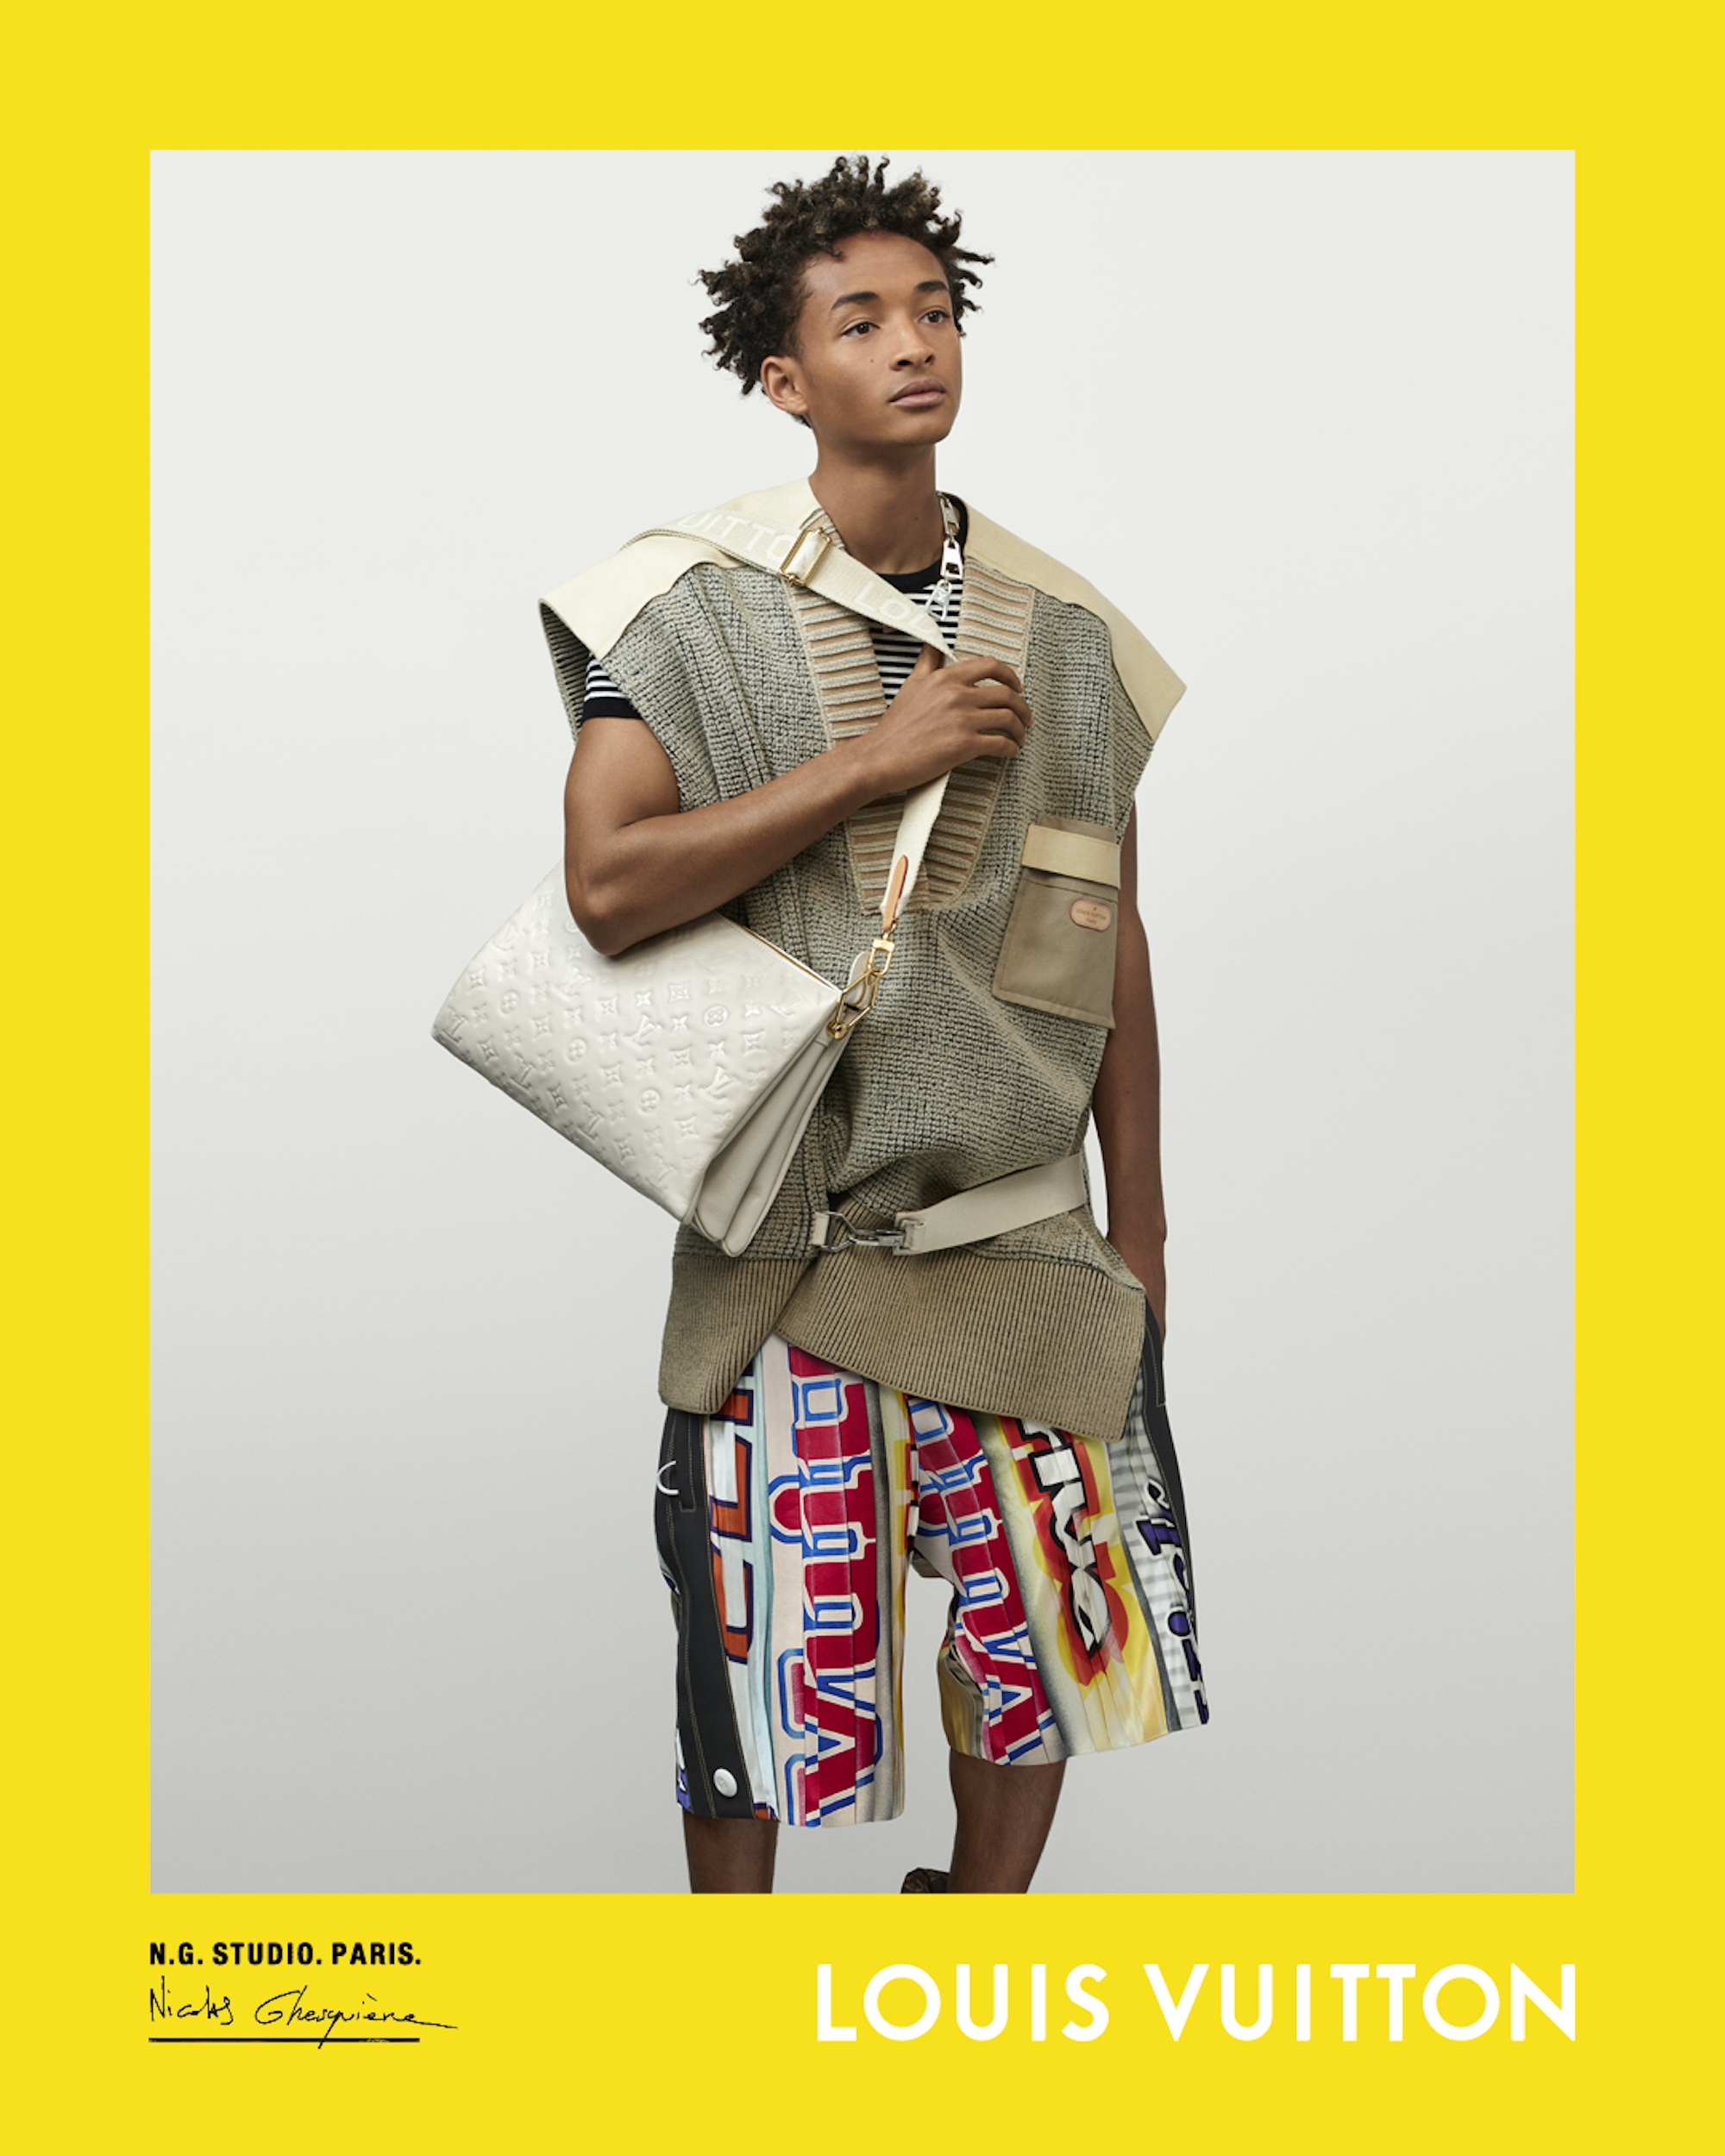 Louis Vuitton Spring Summer 2021 campaign, Nicolas Ghesquière, creative director, photographer, actor rapper Jaden Smith